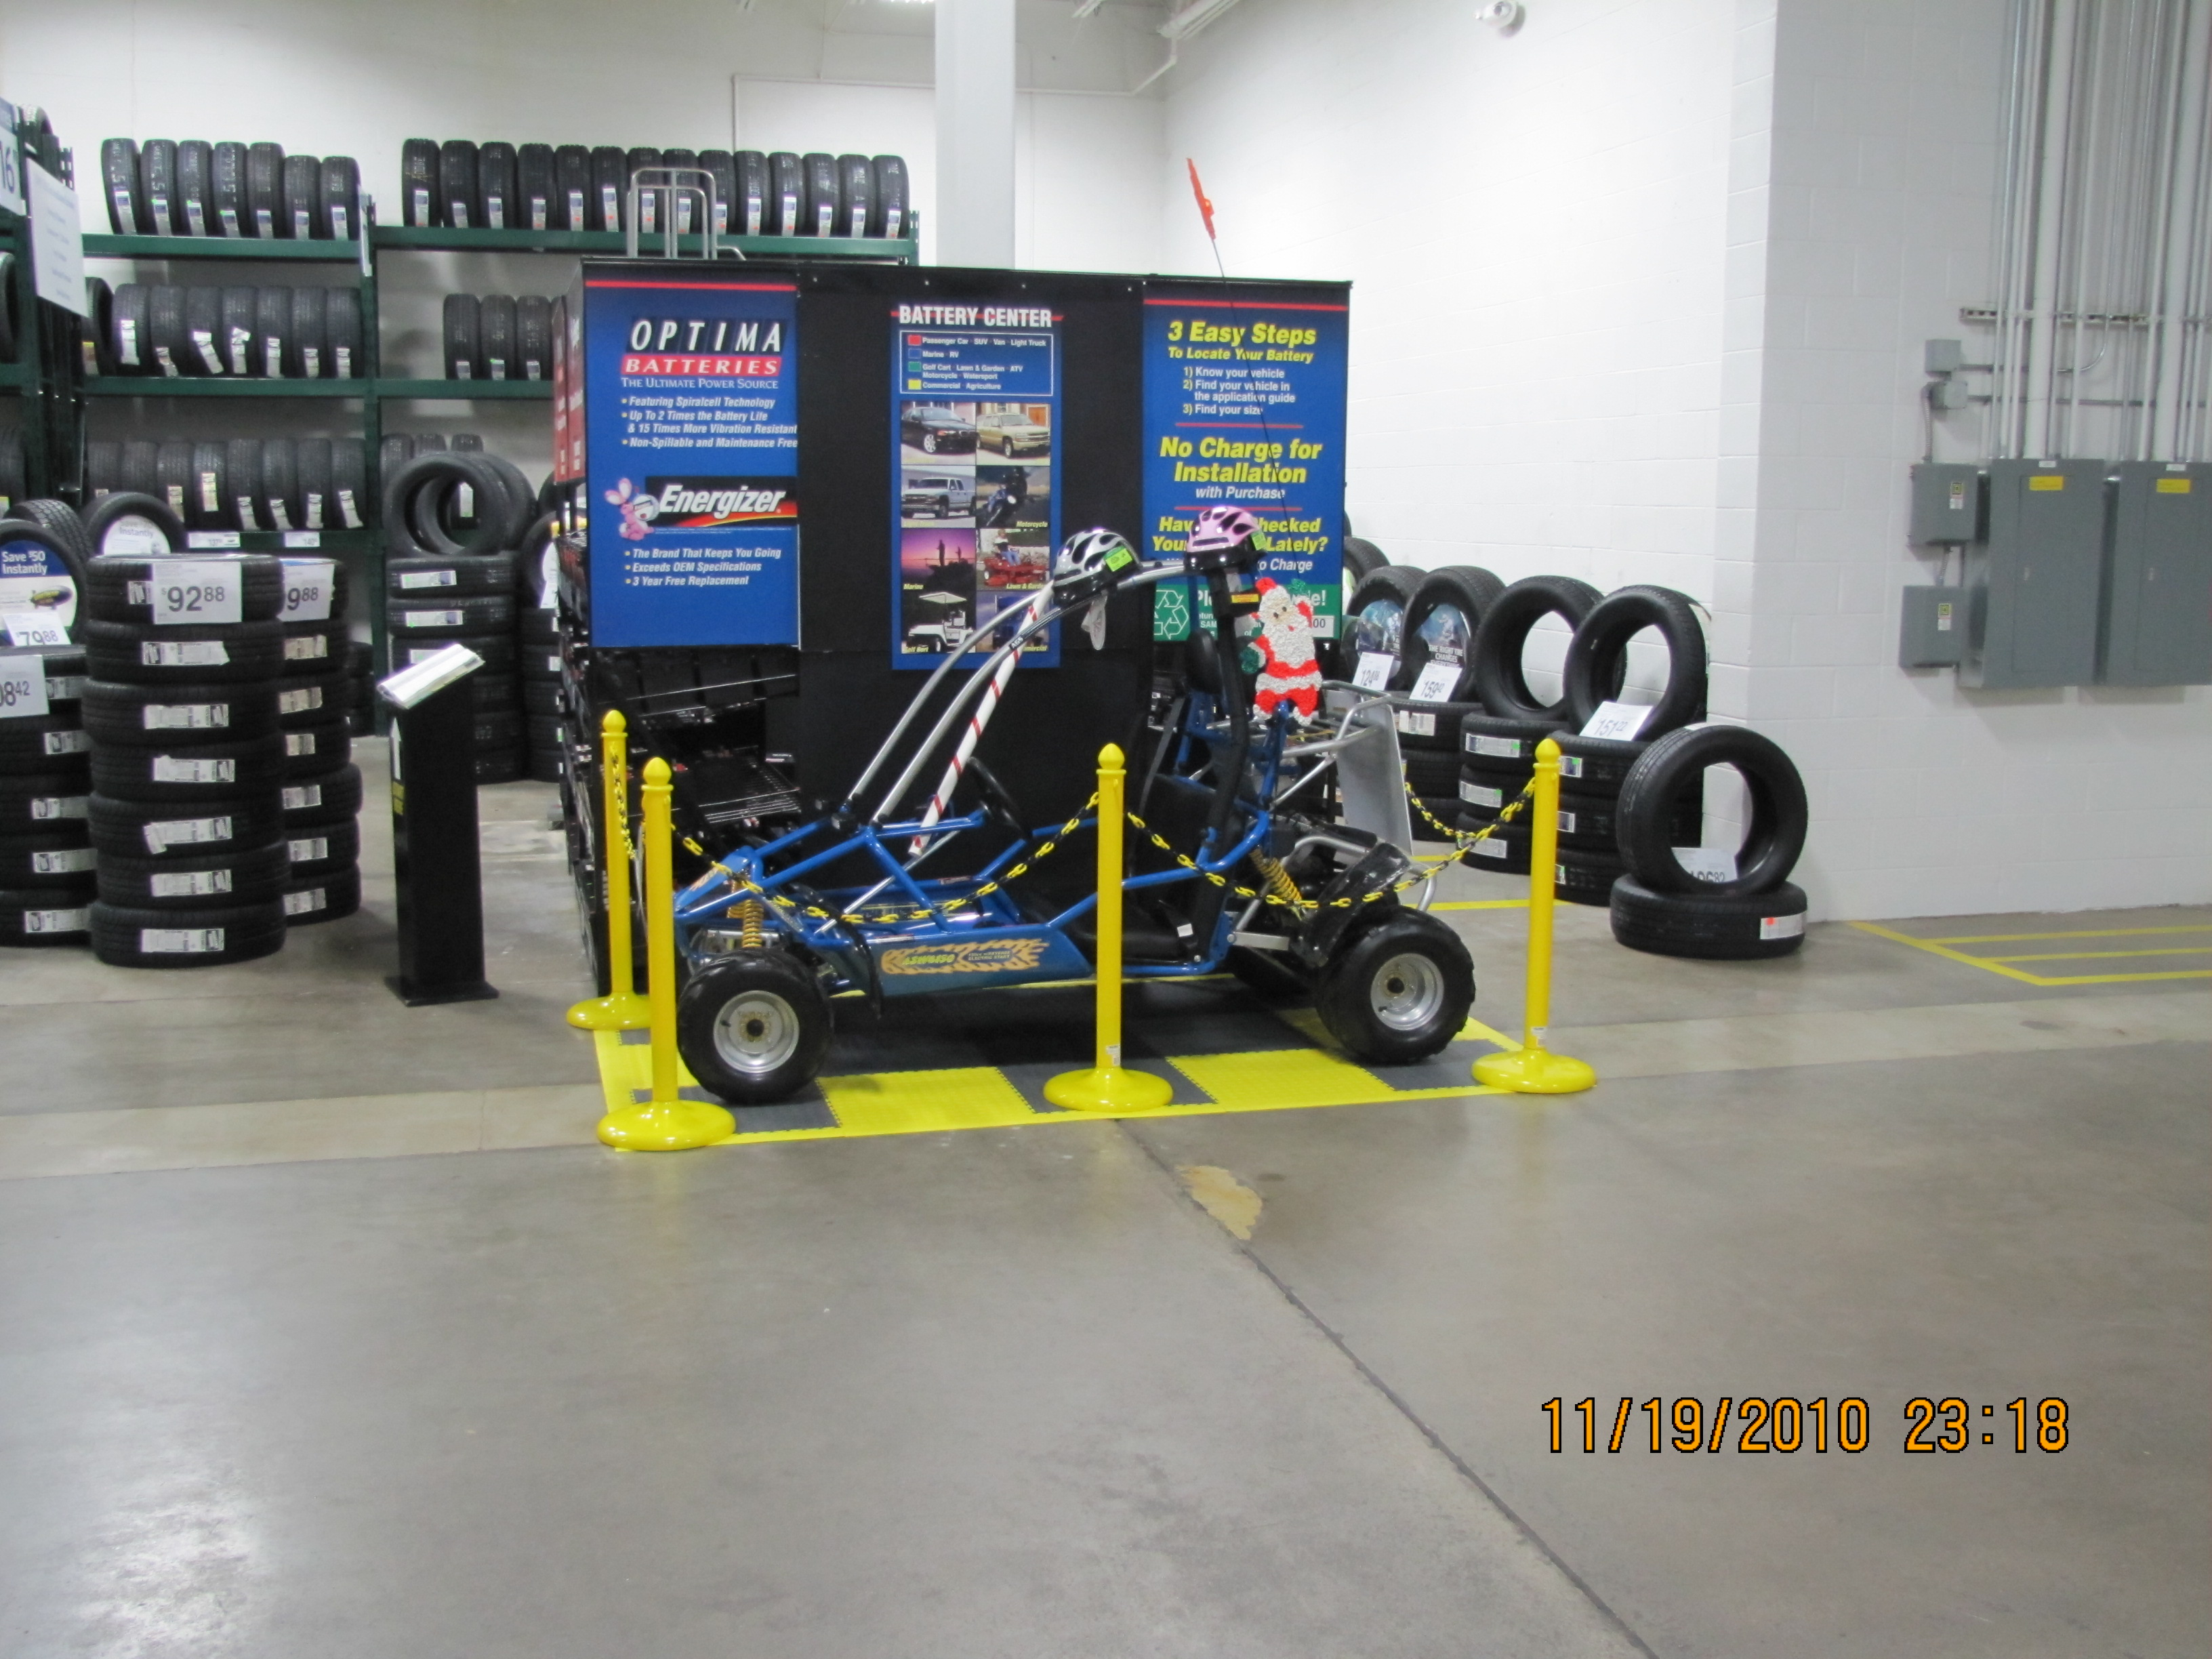 Country Go Carts at Sam's Club Fort Wayne, IN